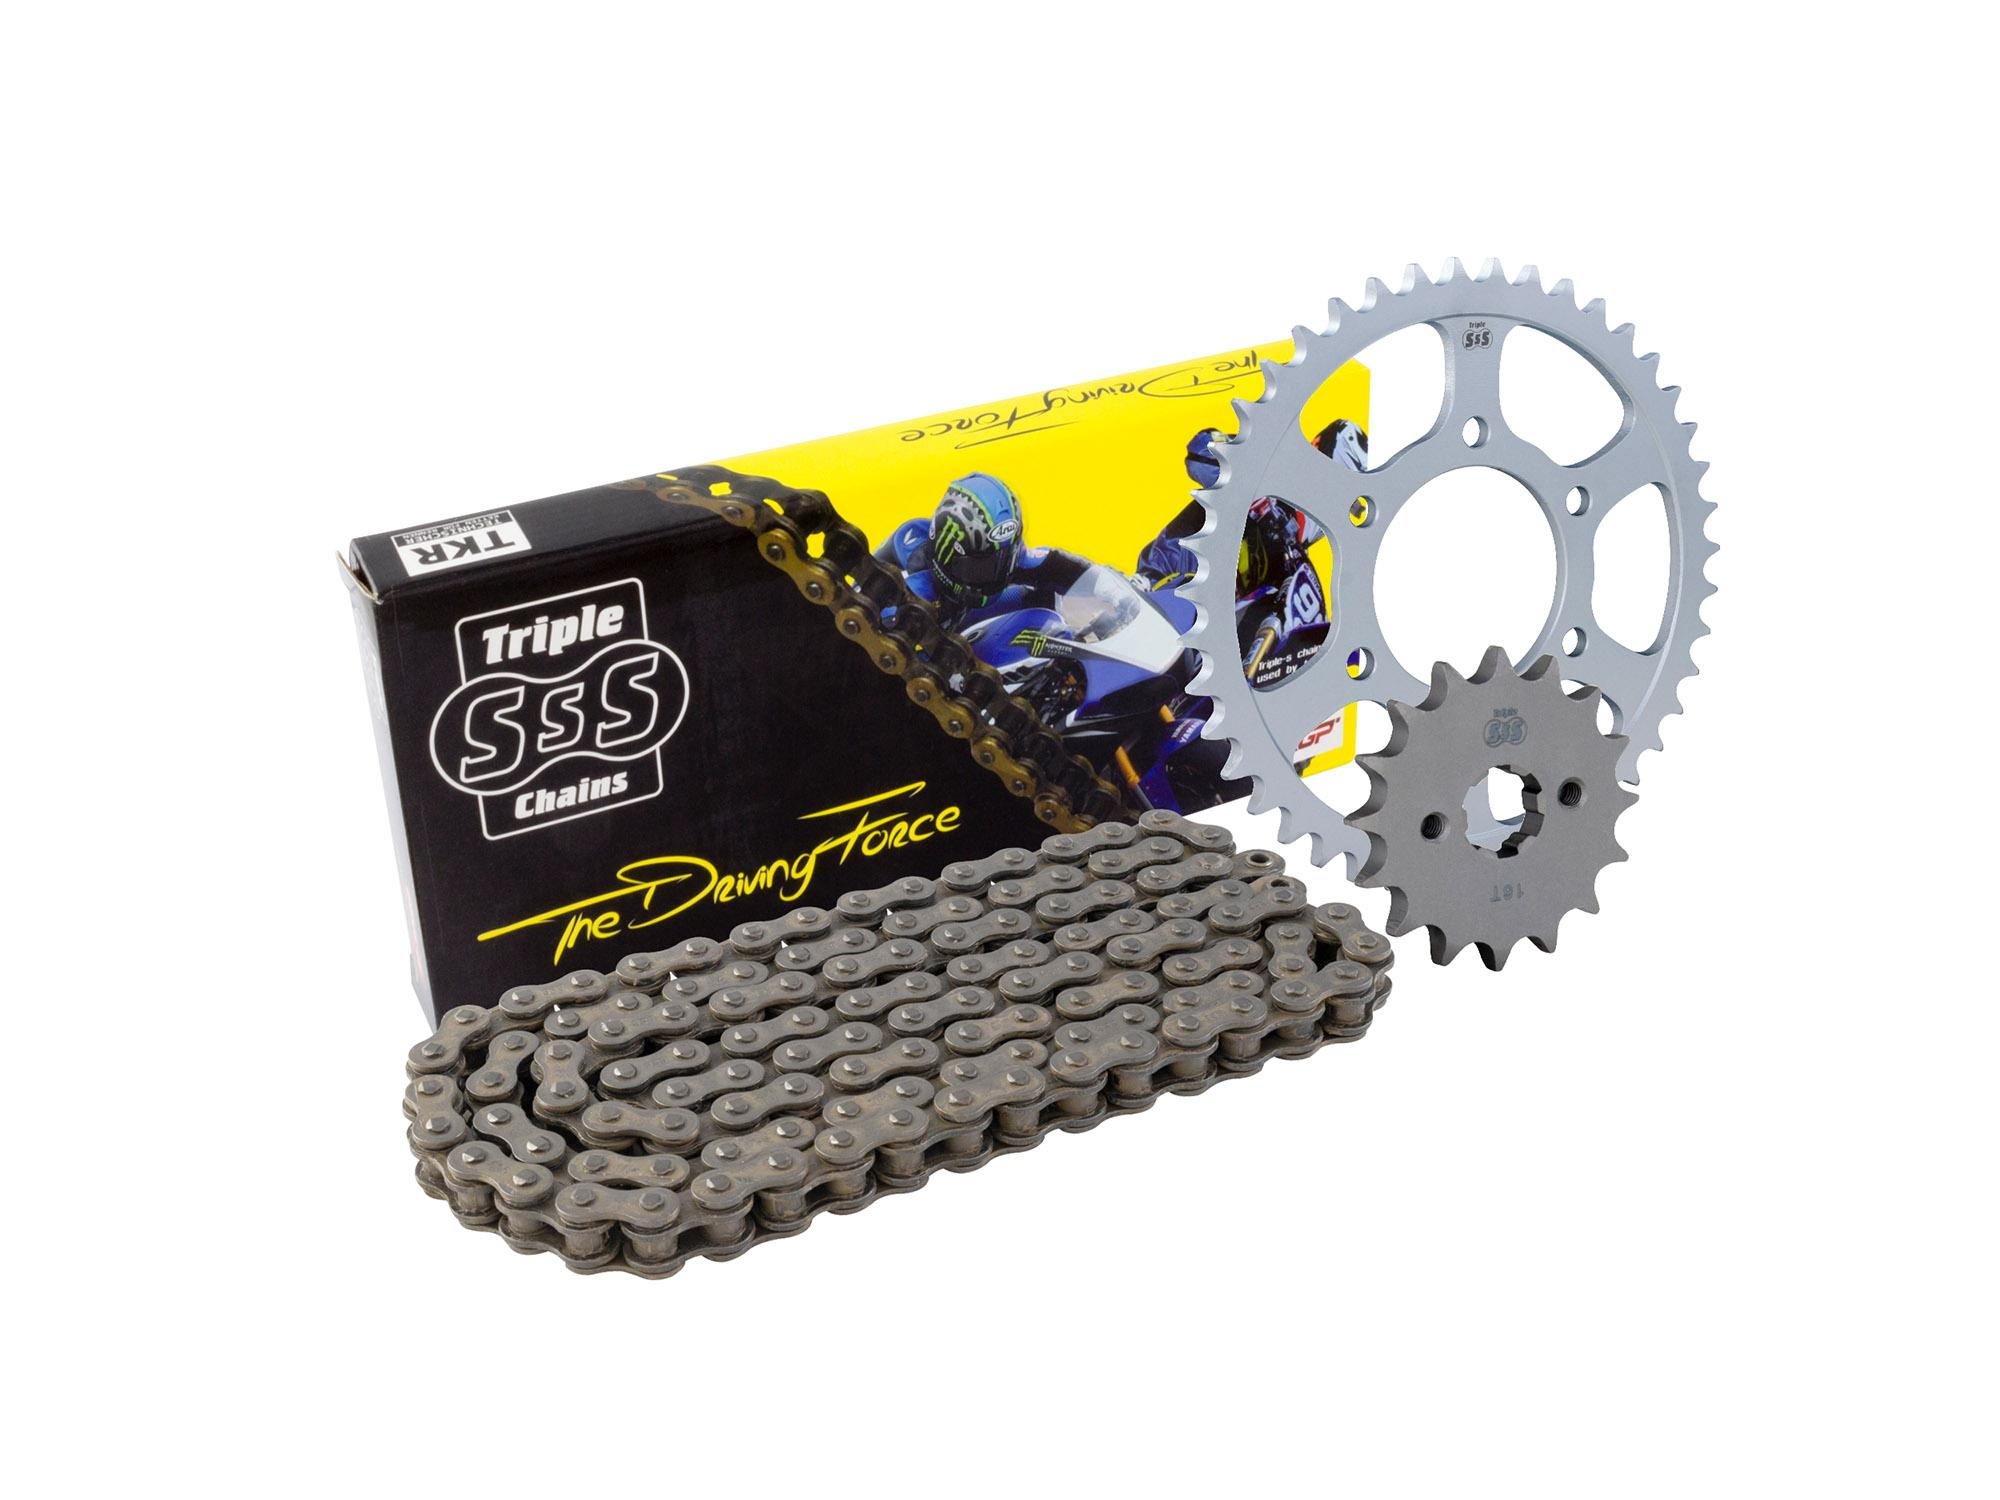 Ducati 750 Monster ie / Dark 02 Chain & Sprocket Kit: 15T Front, 41T Rear, HD O-Ring Black Chain 520H 102Link